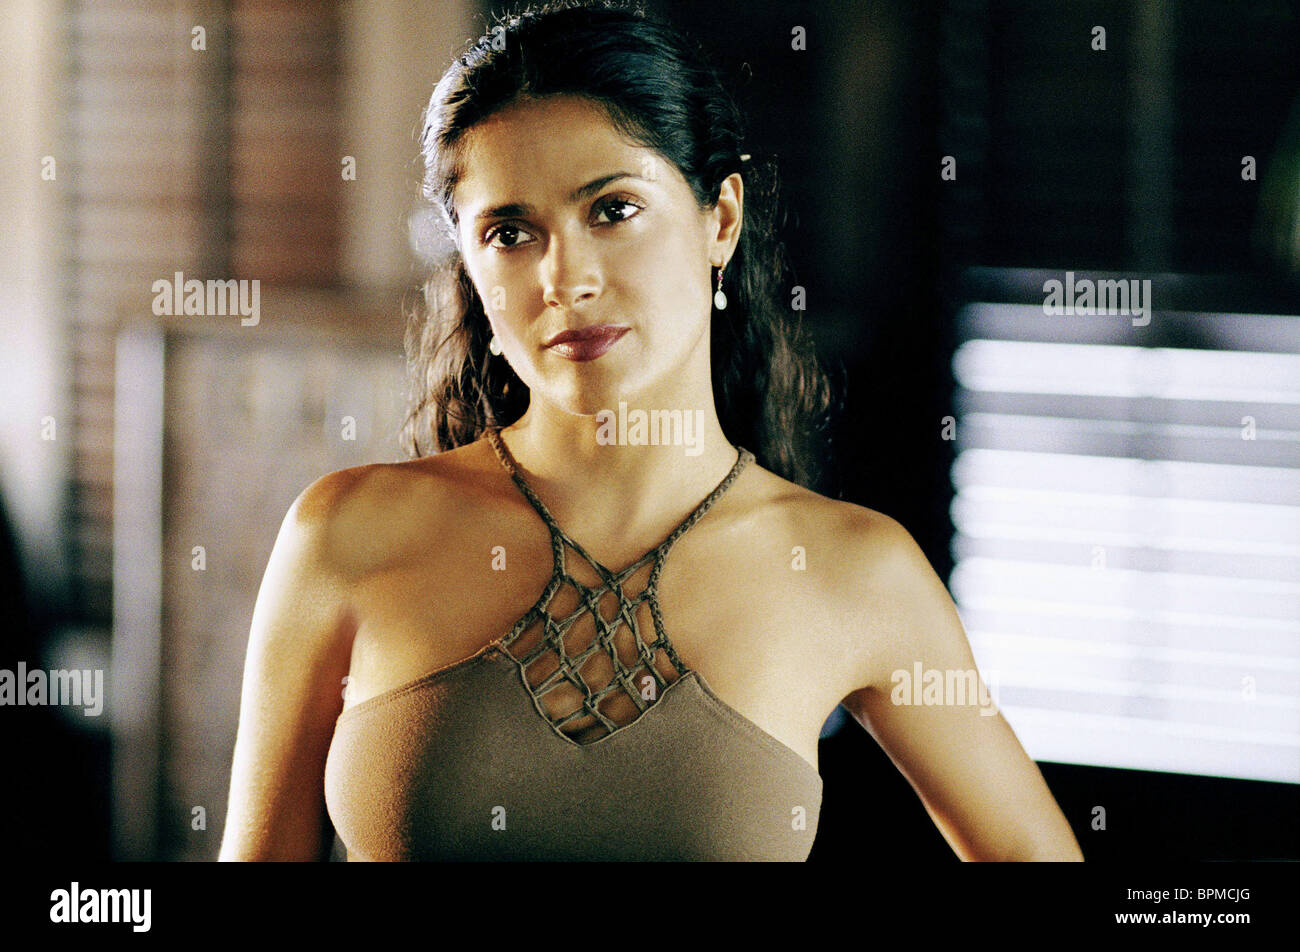 Salma Hayek Stock Photos & Salma Hayek Stock Images - Alamy